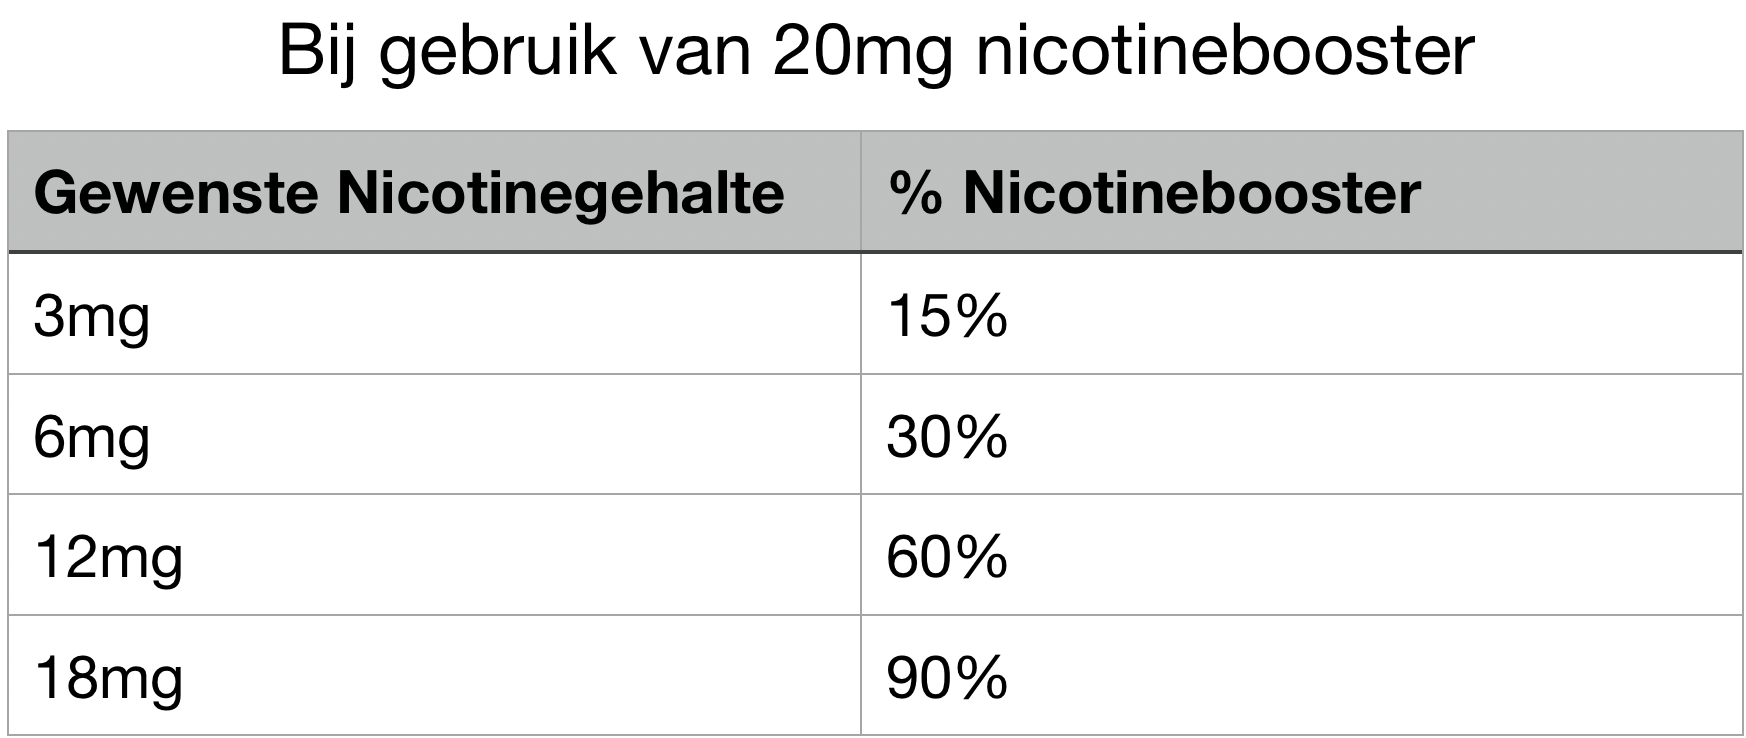 Tabel 20mg nicotinebooster